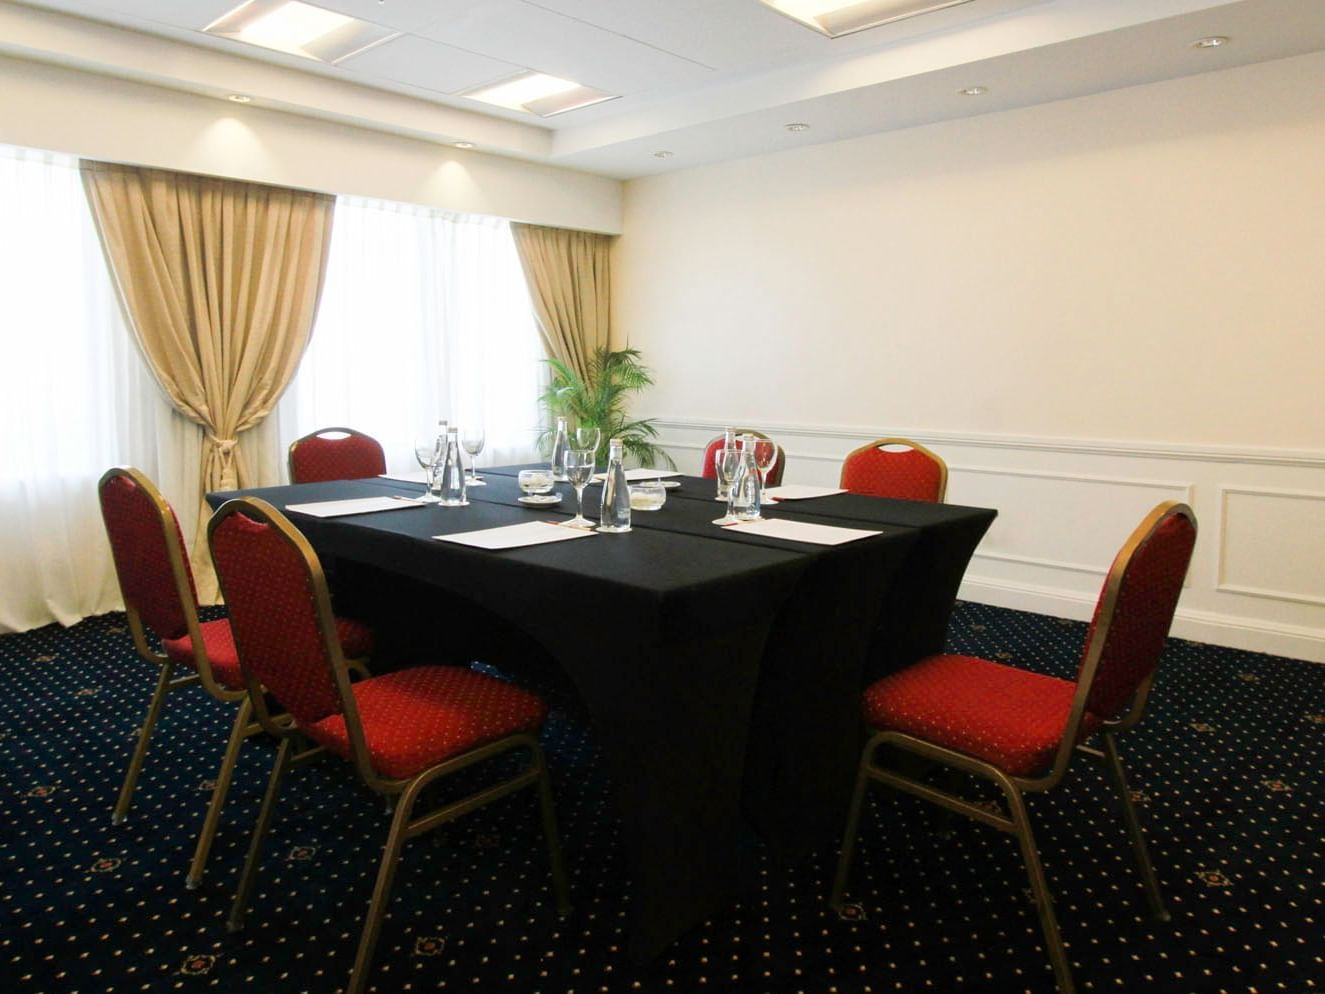 Alcala meeting room arranged with tables and red chairs at Hotel Emperador Buenos Aires